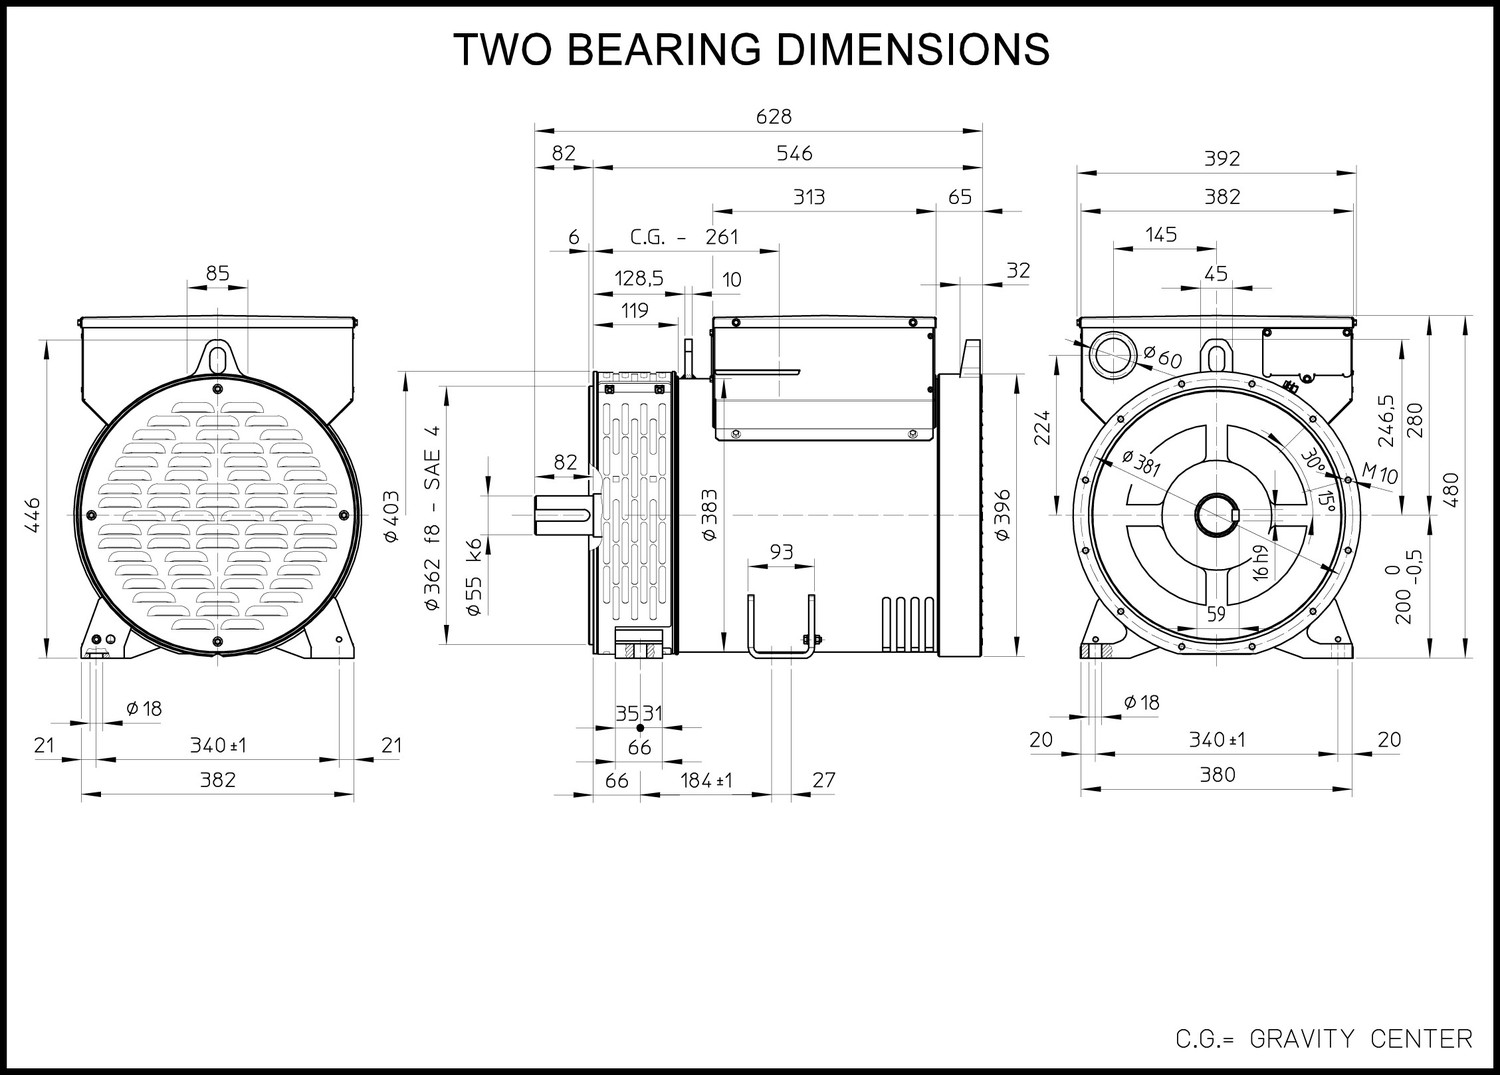 westinghouse automatic transfer switch wiring diagram mallory ignition unilite meccalte generator - manual